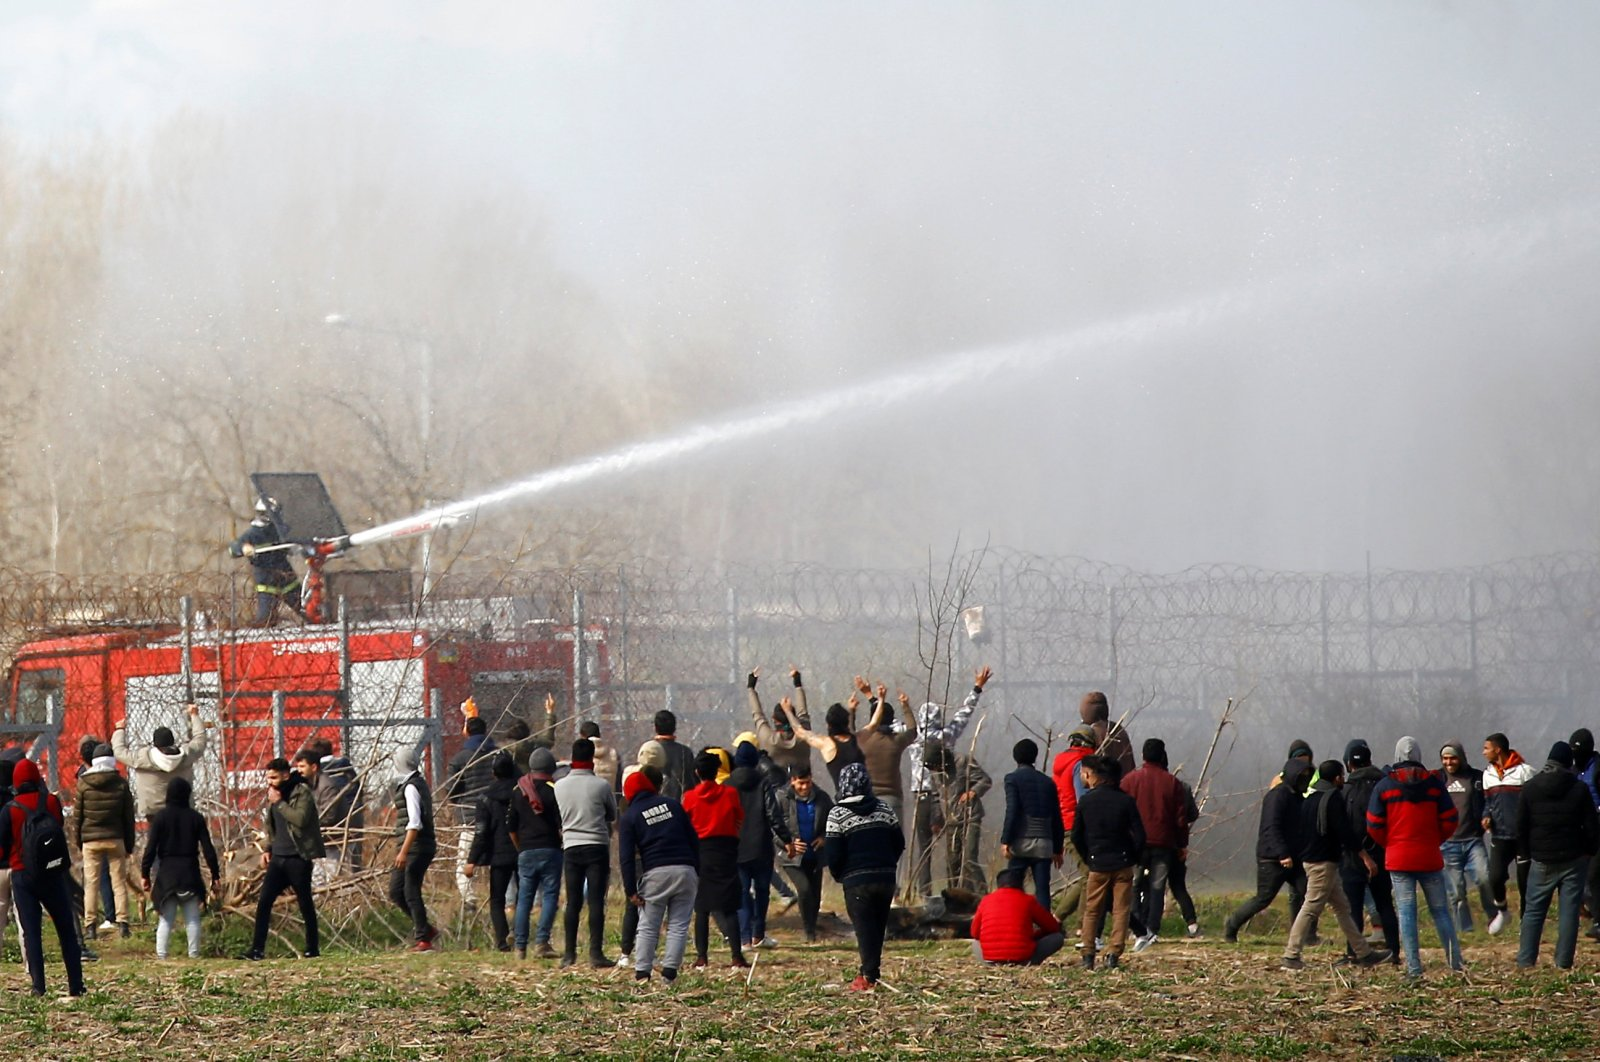 A Greek firefighter uses a water cannon as migrants gather on the Turkish-Greek border near Turkey's Pazarkule border crossing with Greece's Kastanies, in Edirne, Turkey, March 7, 2020. (Reuters File Photo)